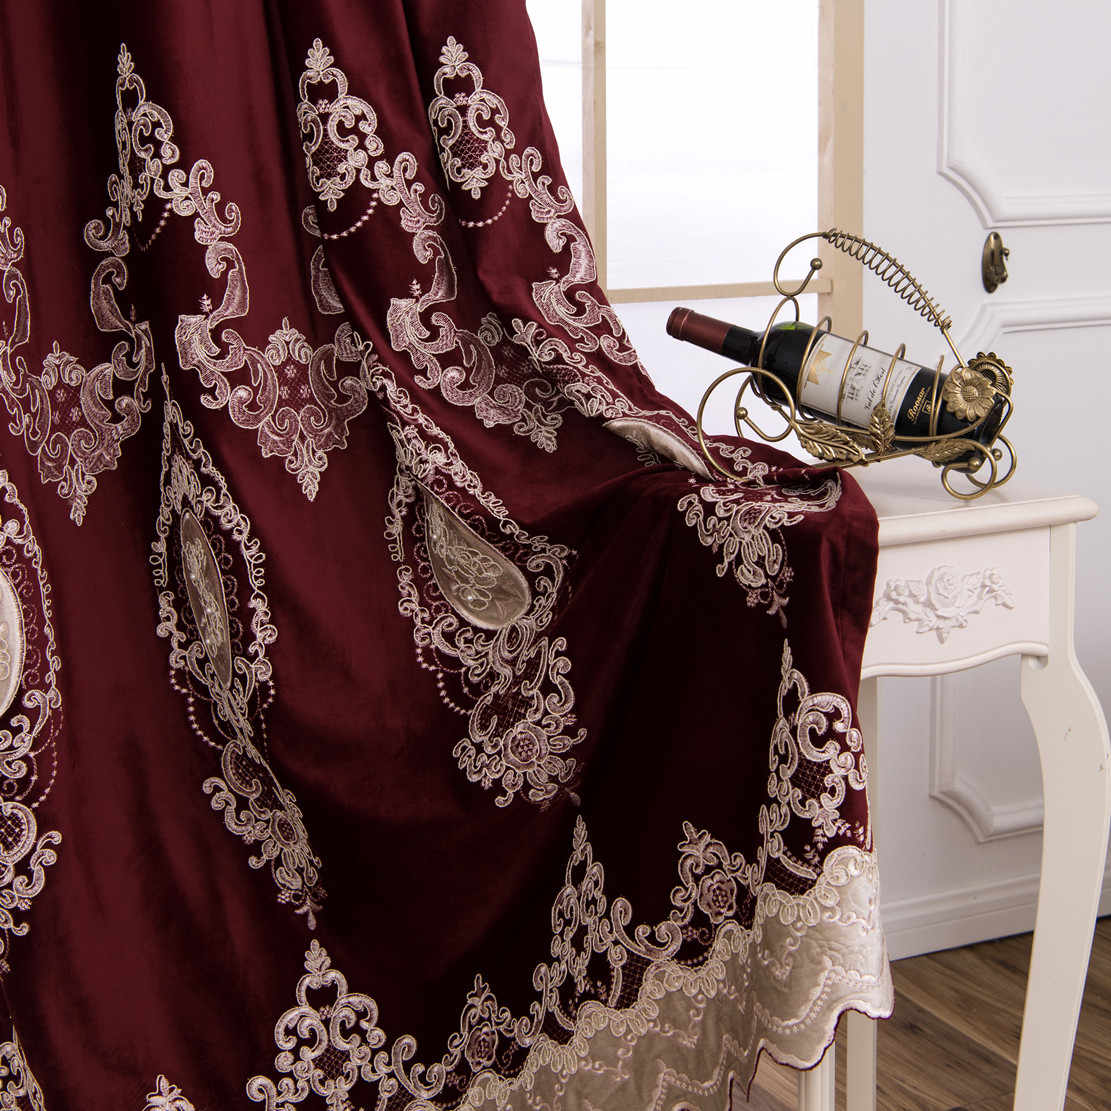 European Luxury Embroidery Curtains Burgundy Velvet Cloth Curtains With Beads Blackout Curtain For Bedroom And Living Room Curtains Aliexpress